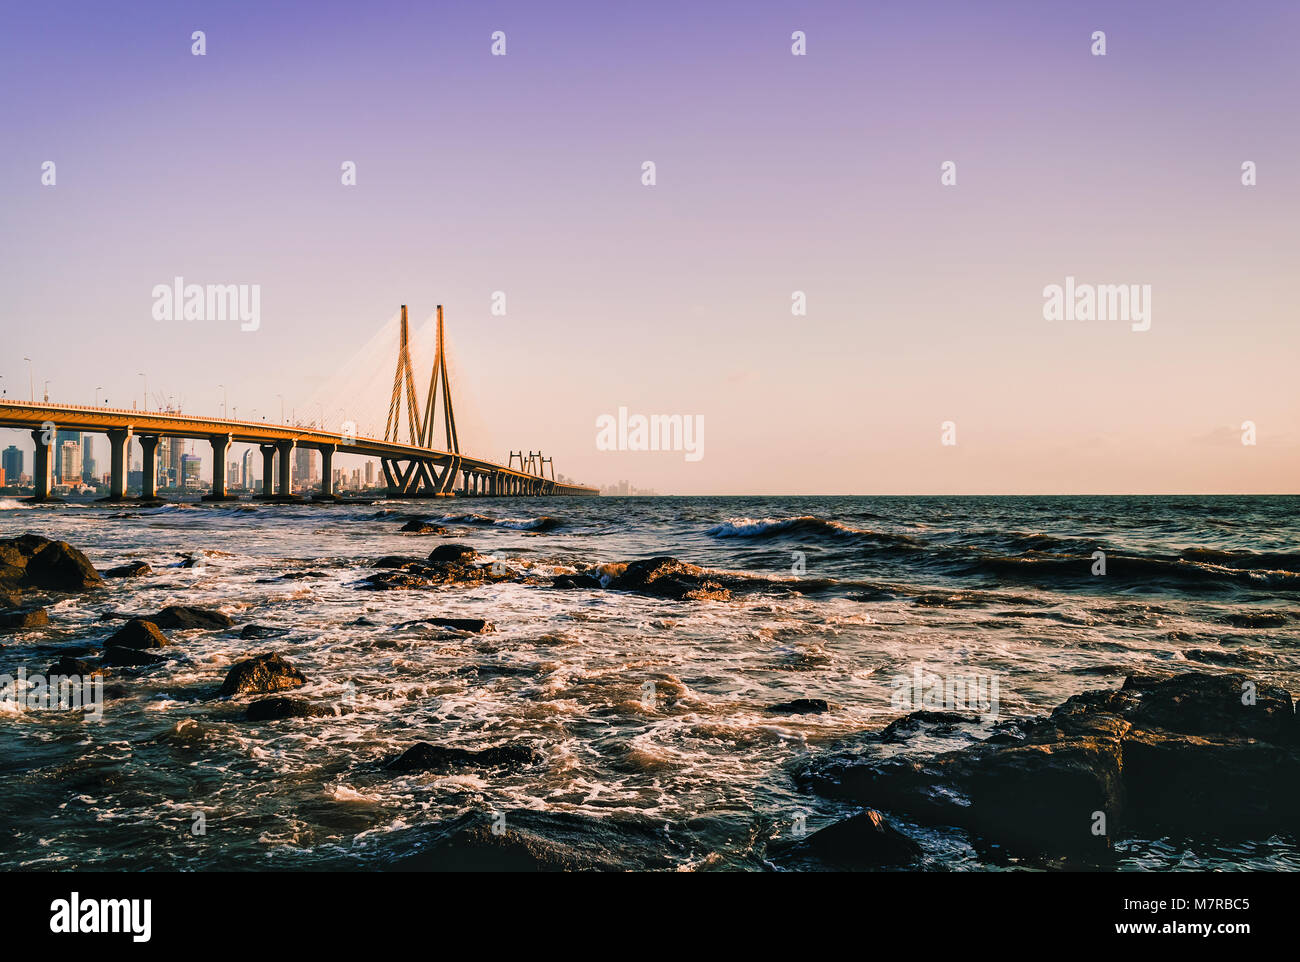 Bandra Worli Sea link as viewed from Bandstand - Stock Image